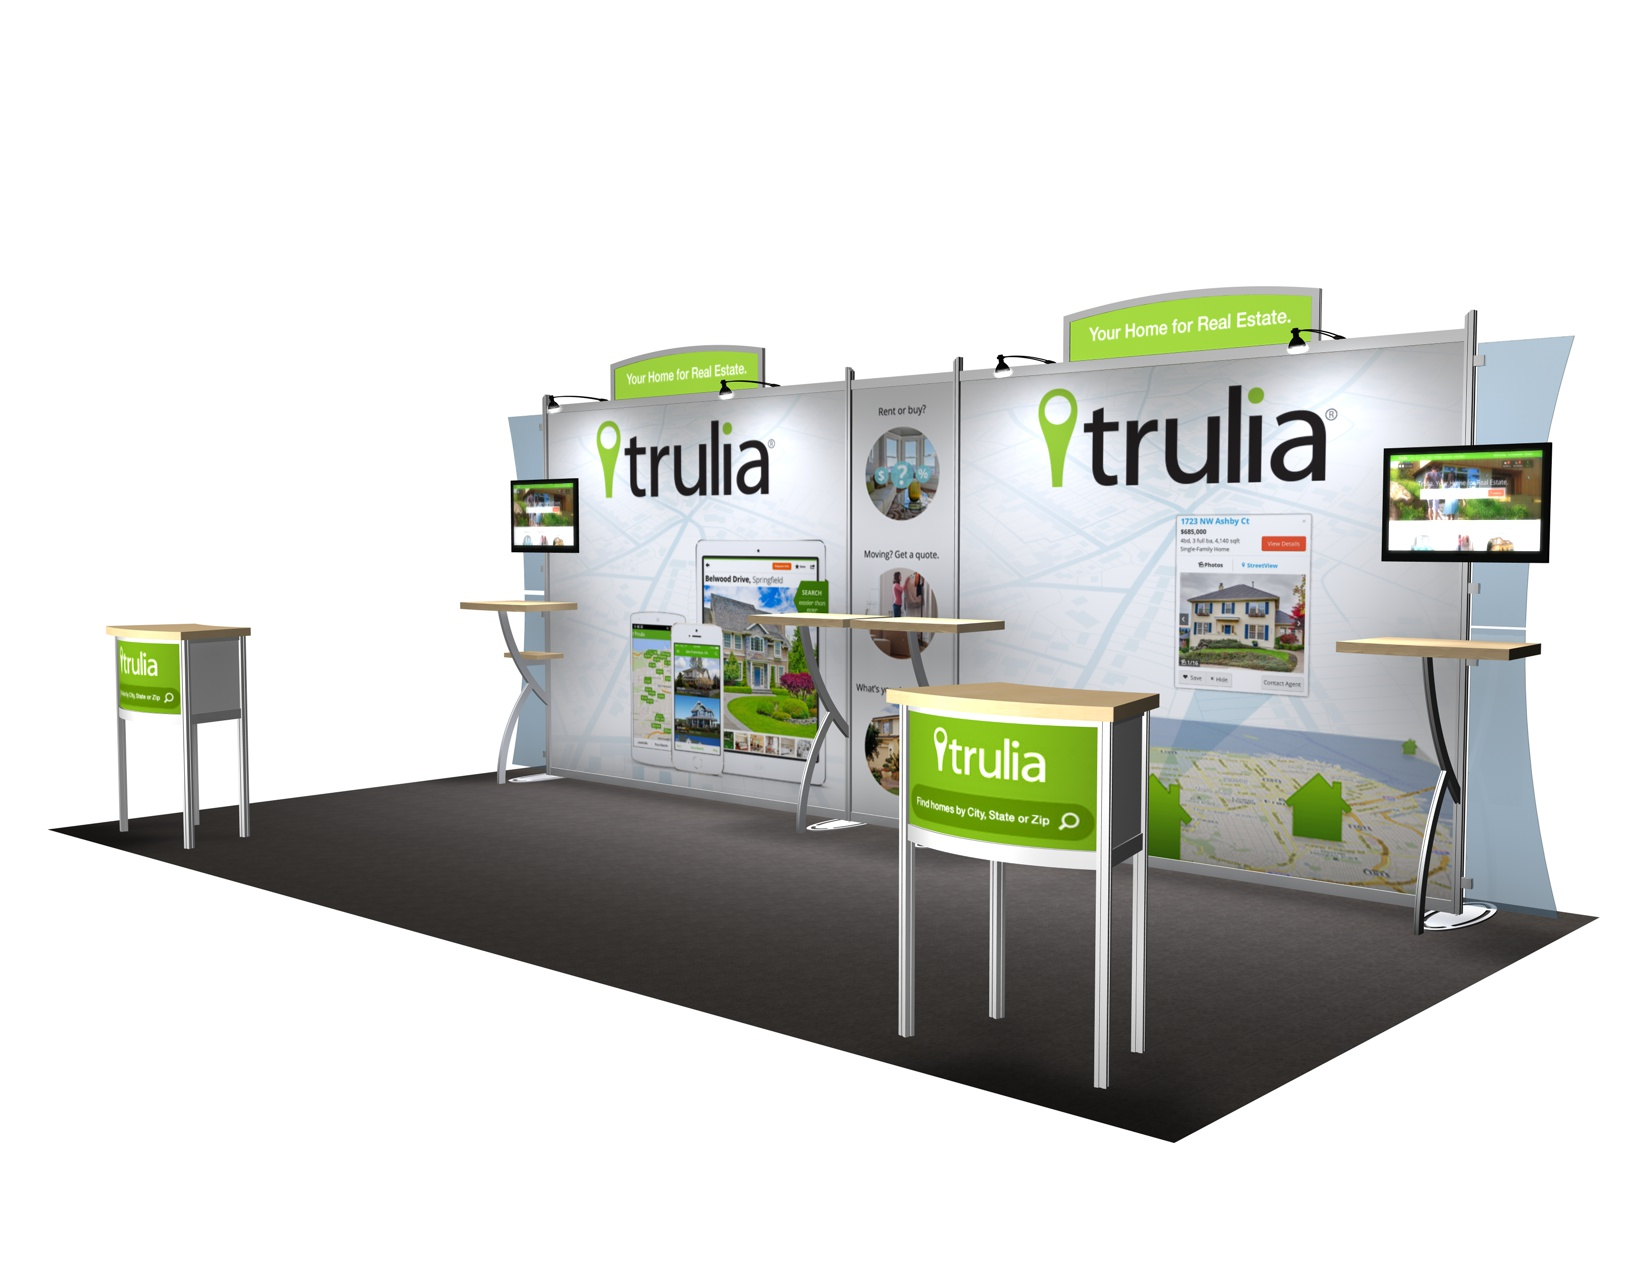 Trade Display Stands : Exhibit design search vk sacagawea ft